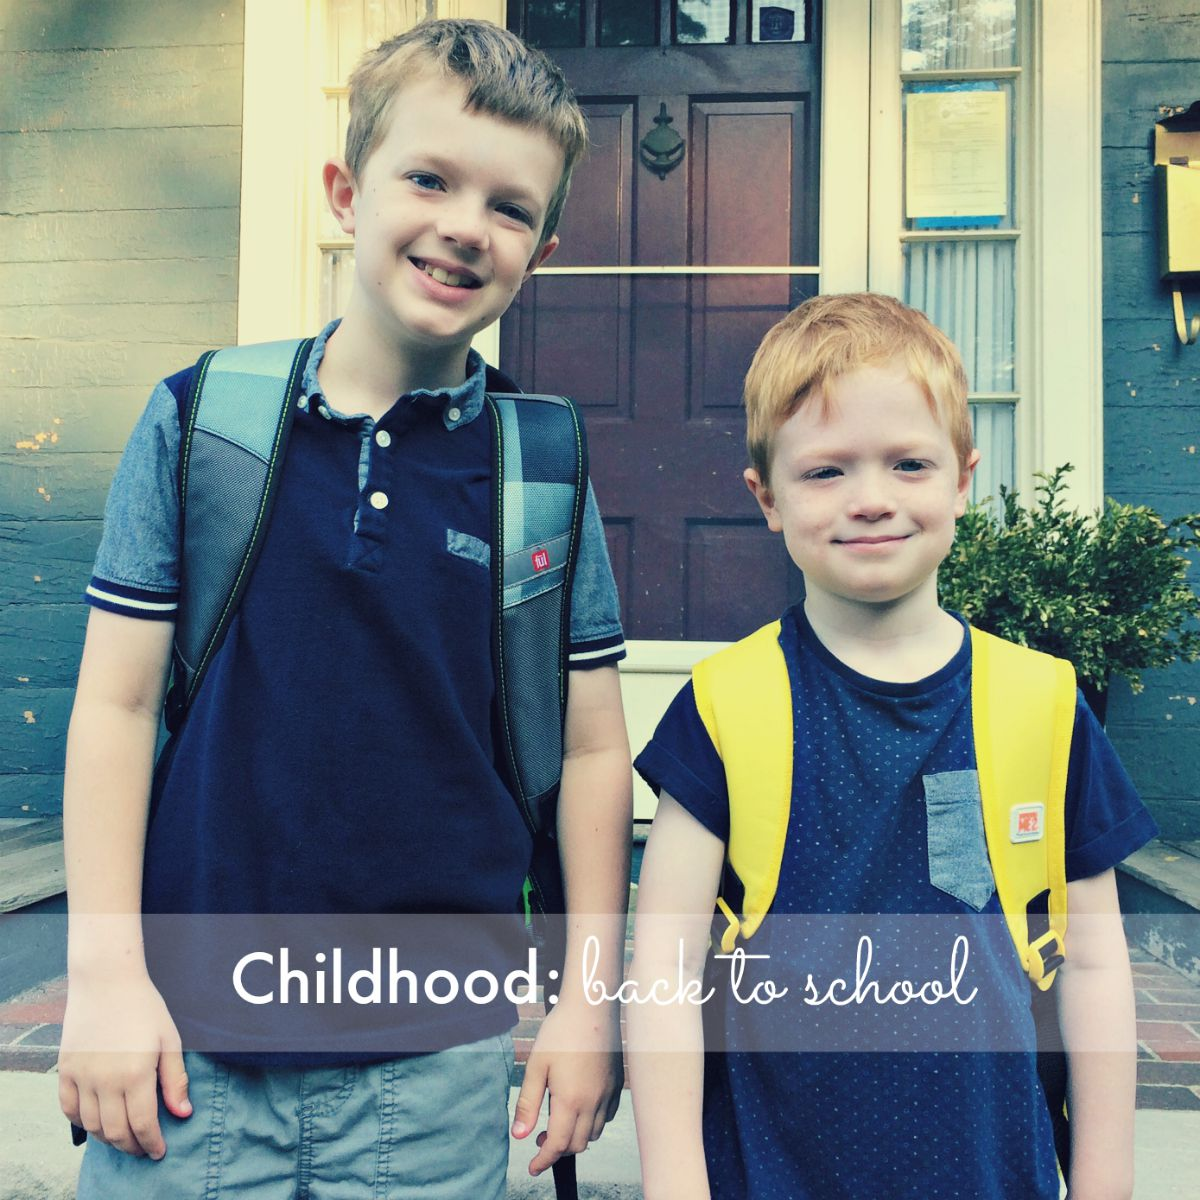 Childhood: back to school